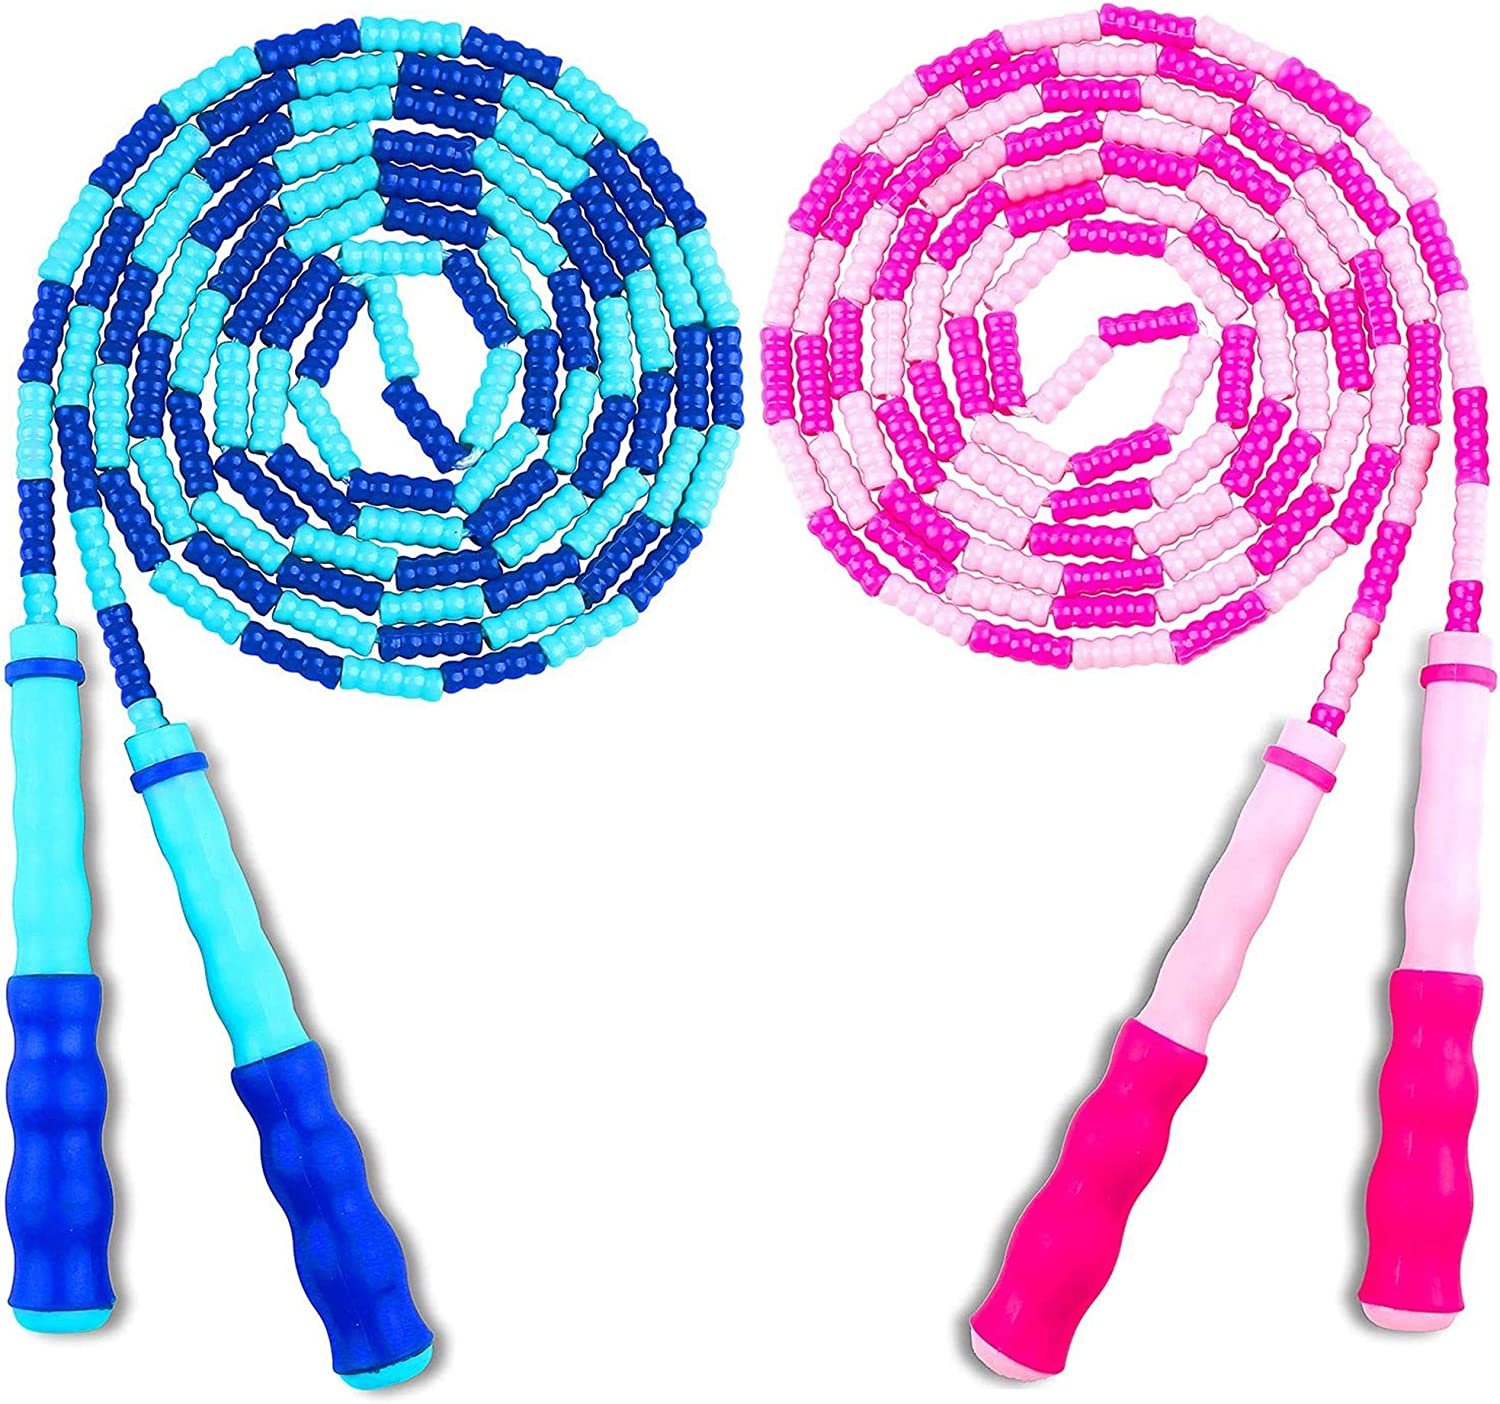 Training and Workout Premium Soft Beaded Skipping Rope Adjustable Tangle-Free Segmented Fitness Jump Ropes for Kids and Women Keeping Fit ANYJOY 2 Pack Jump Rope